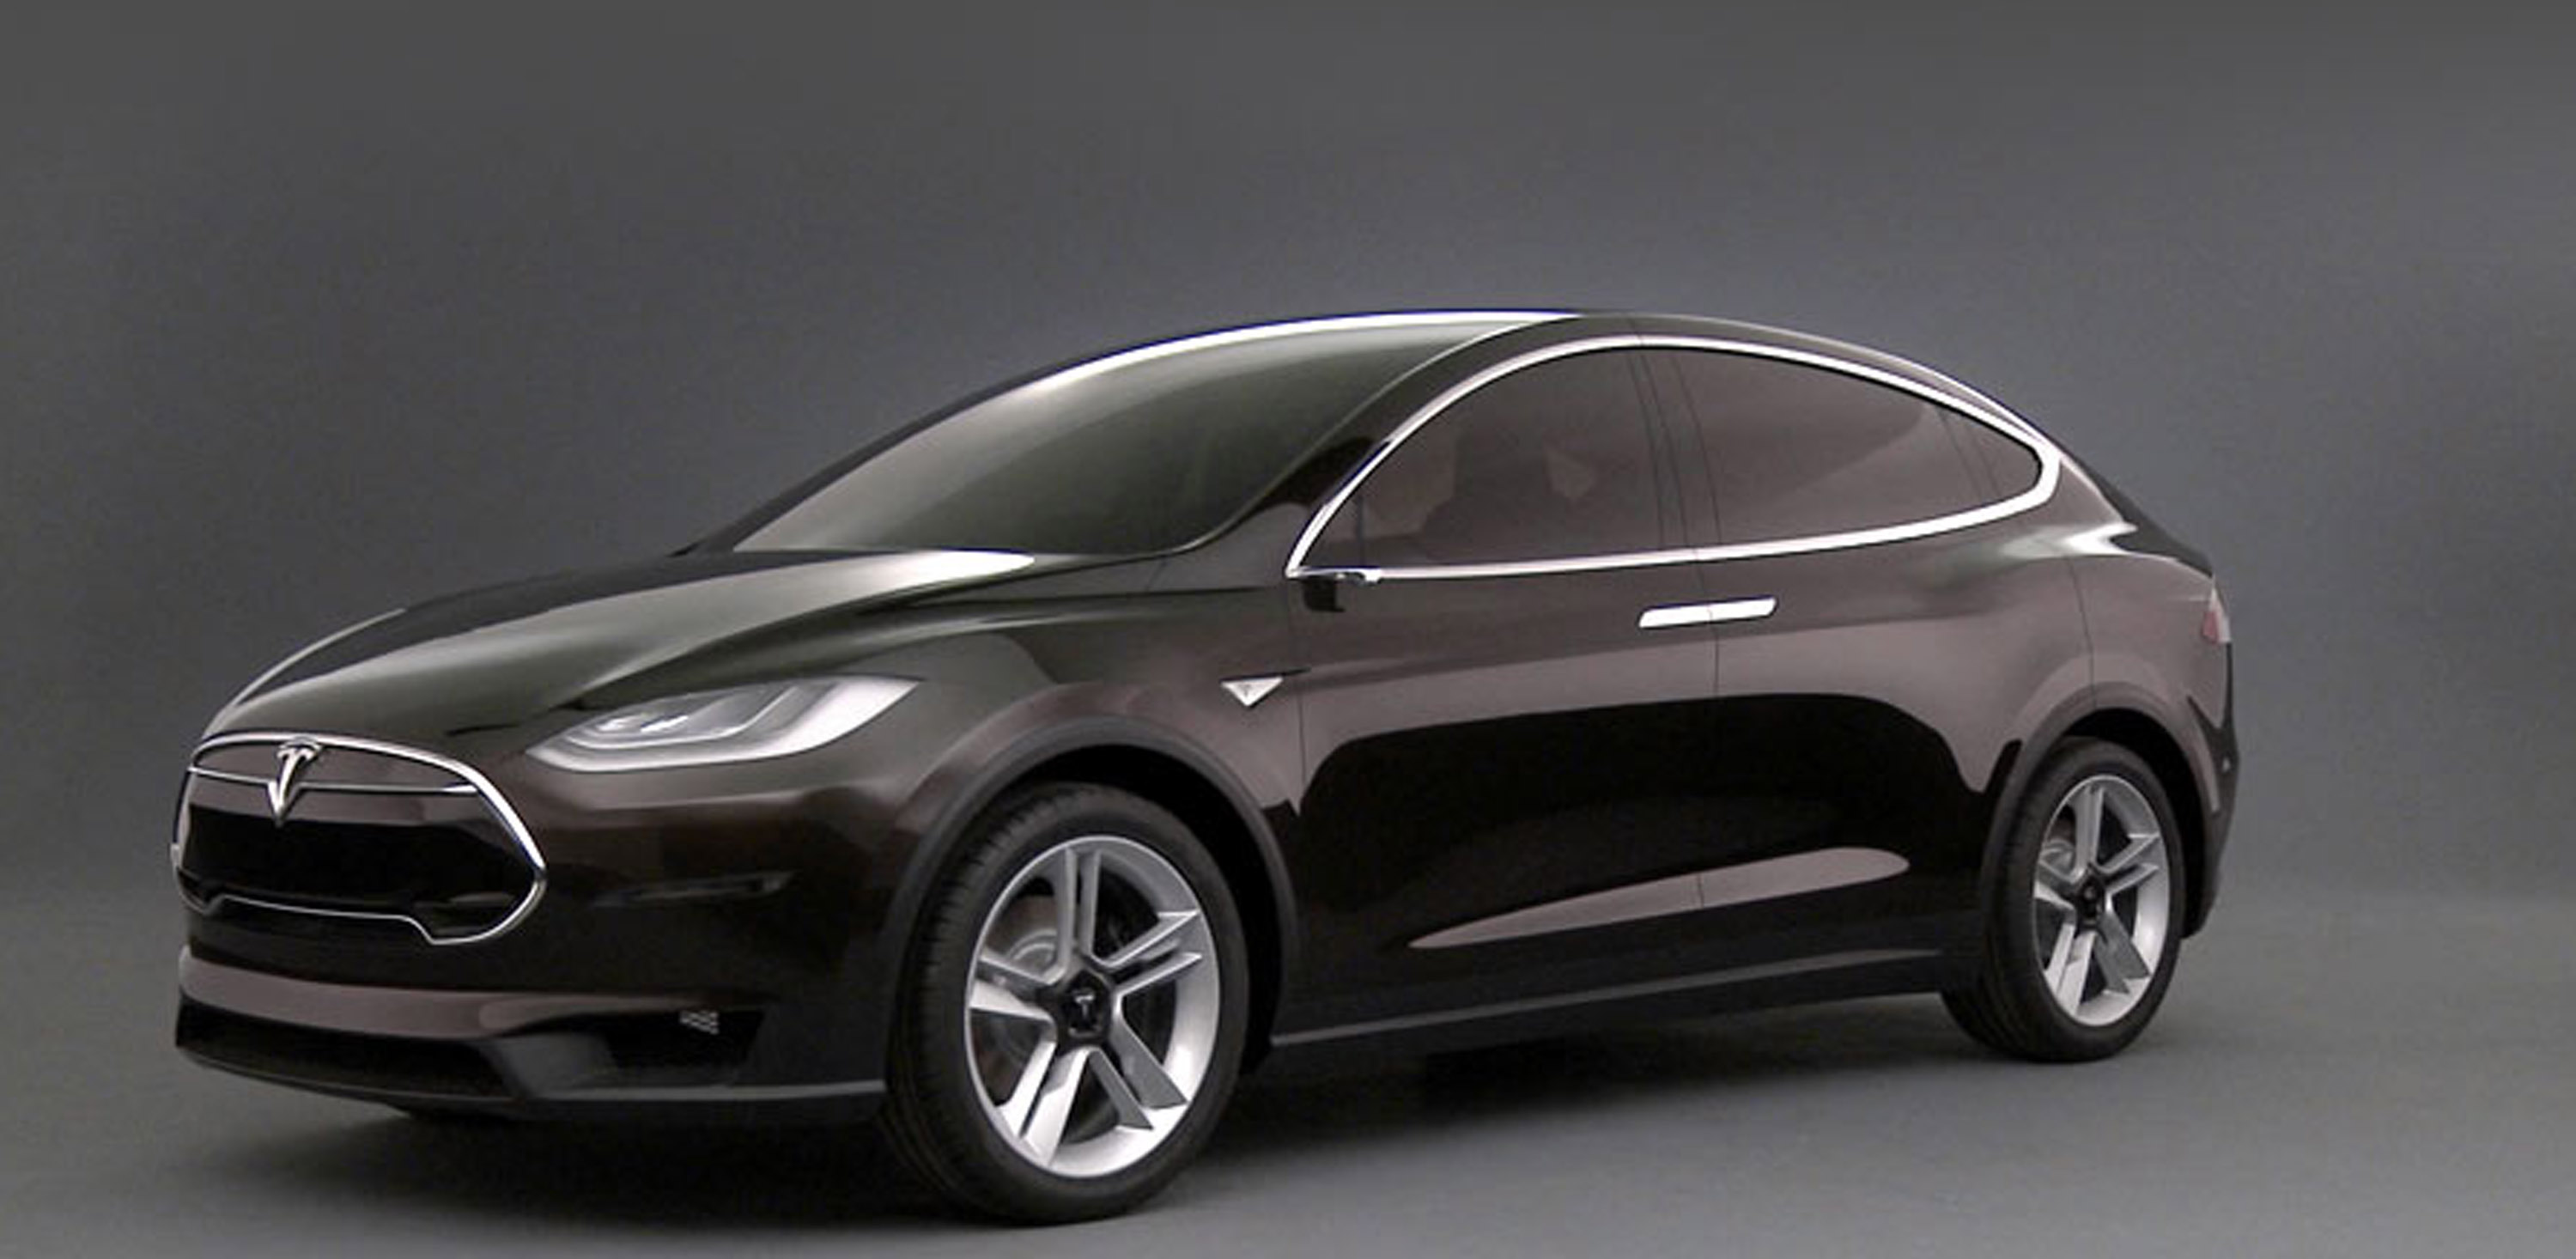 2015 tesla model x comes with revolutionary features